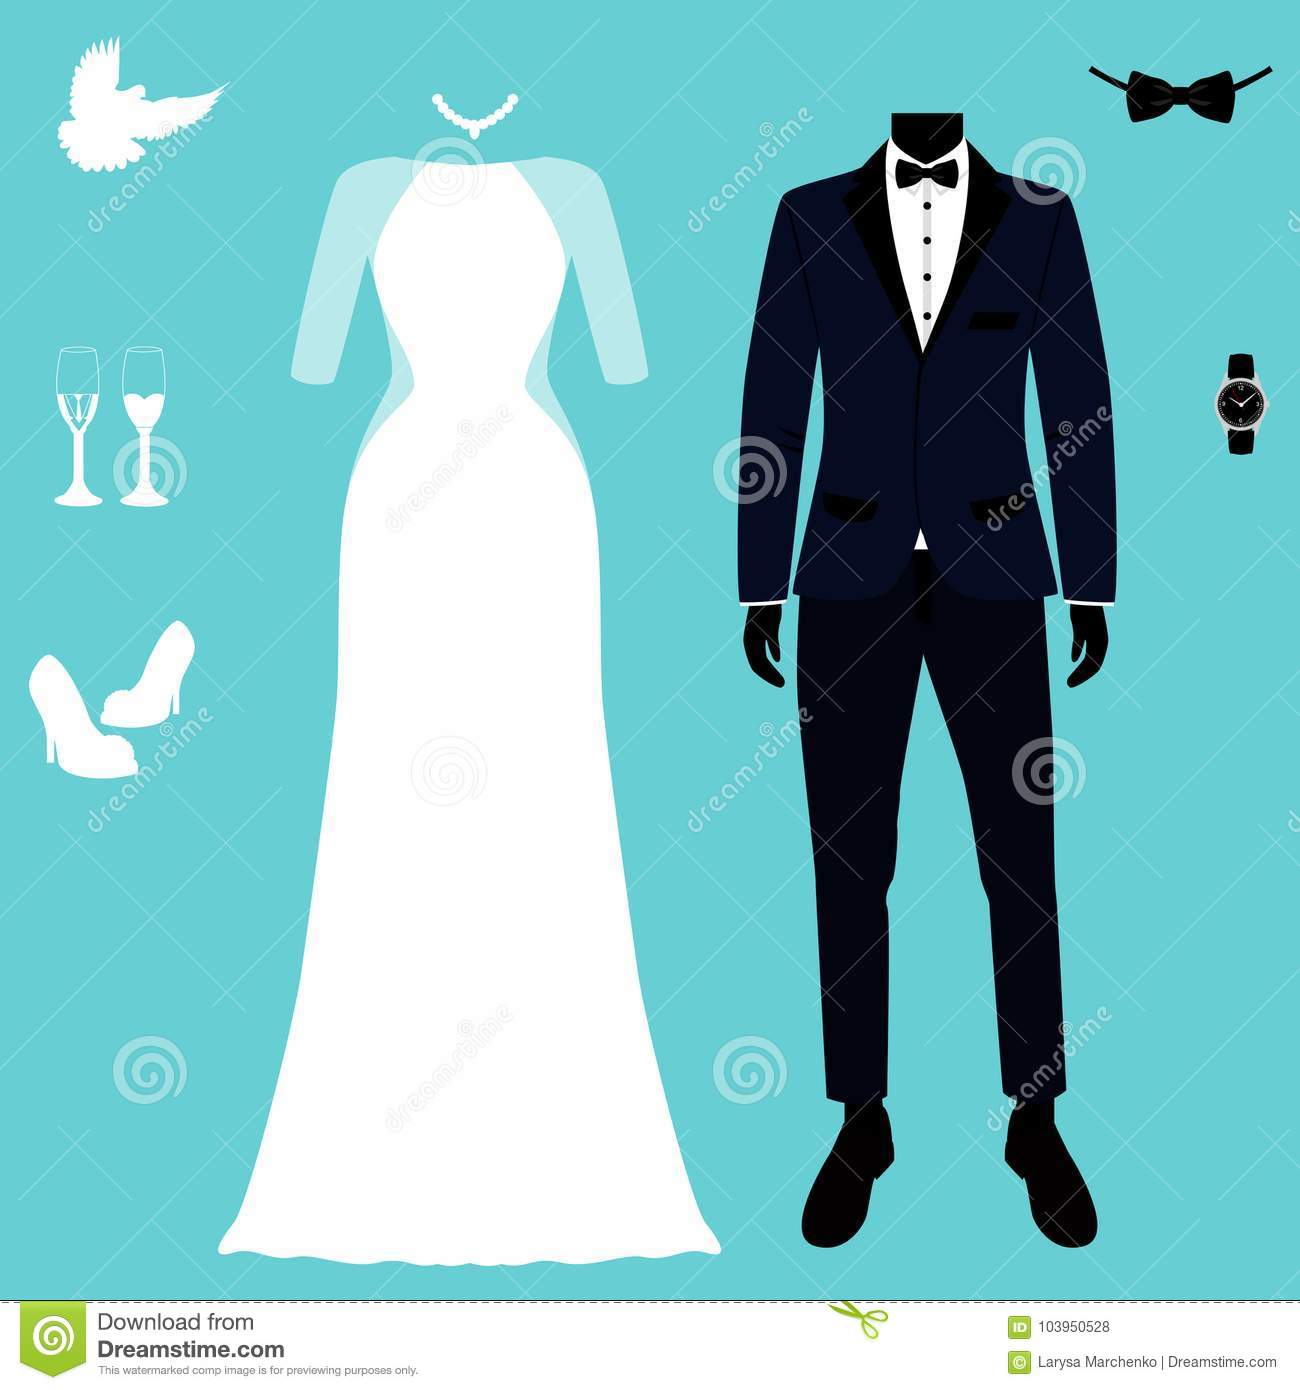 Wedding Card With The Clothes Of The Bride And Groom. Stock Vector ...